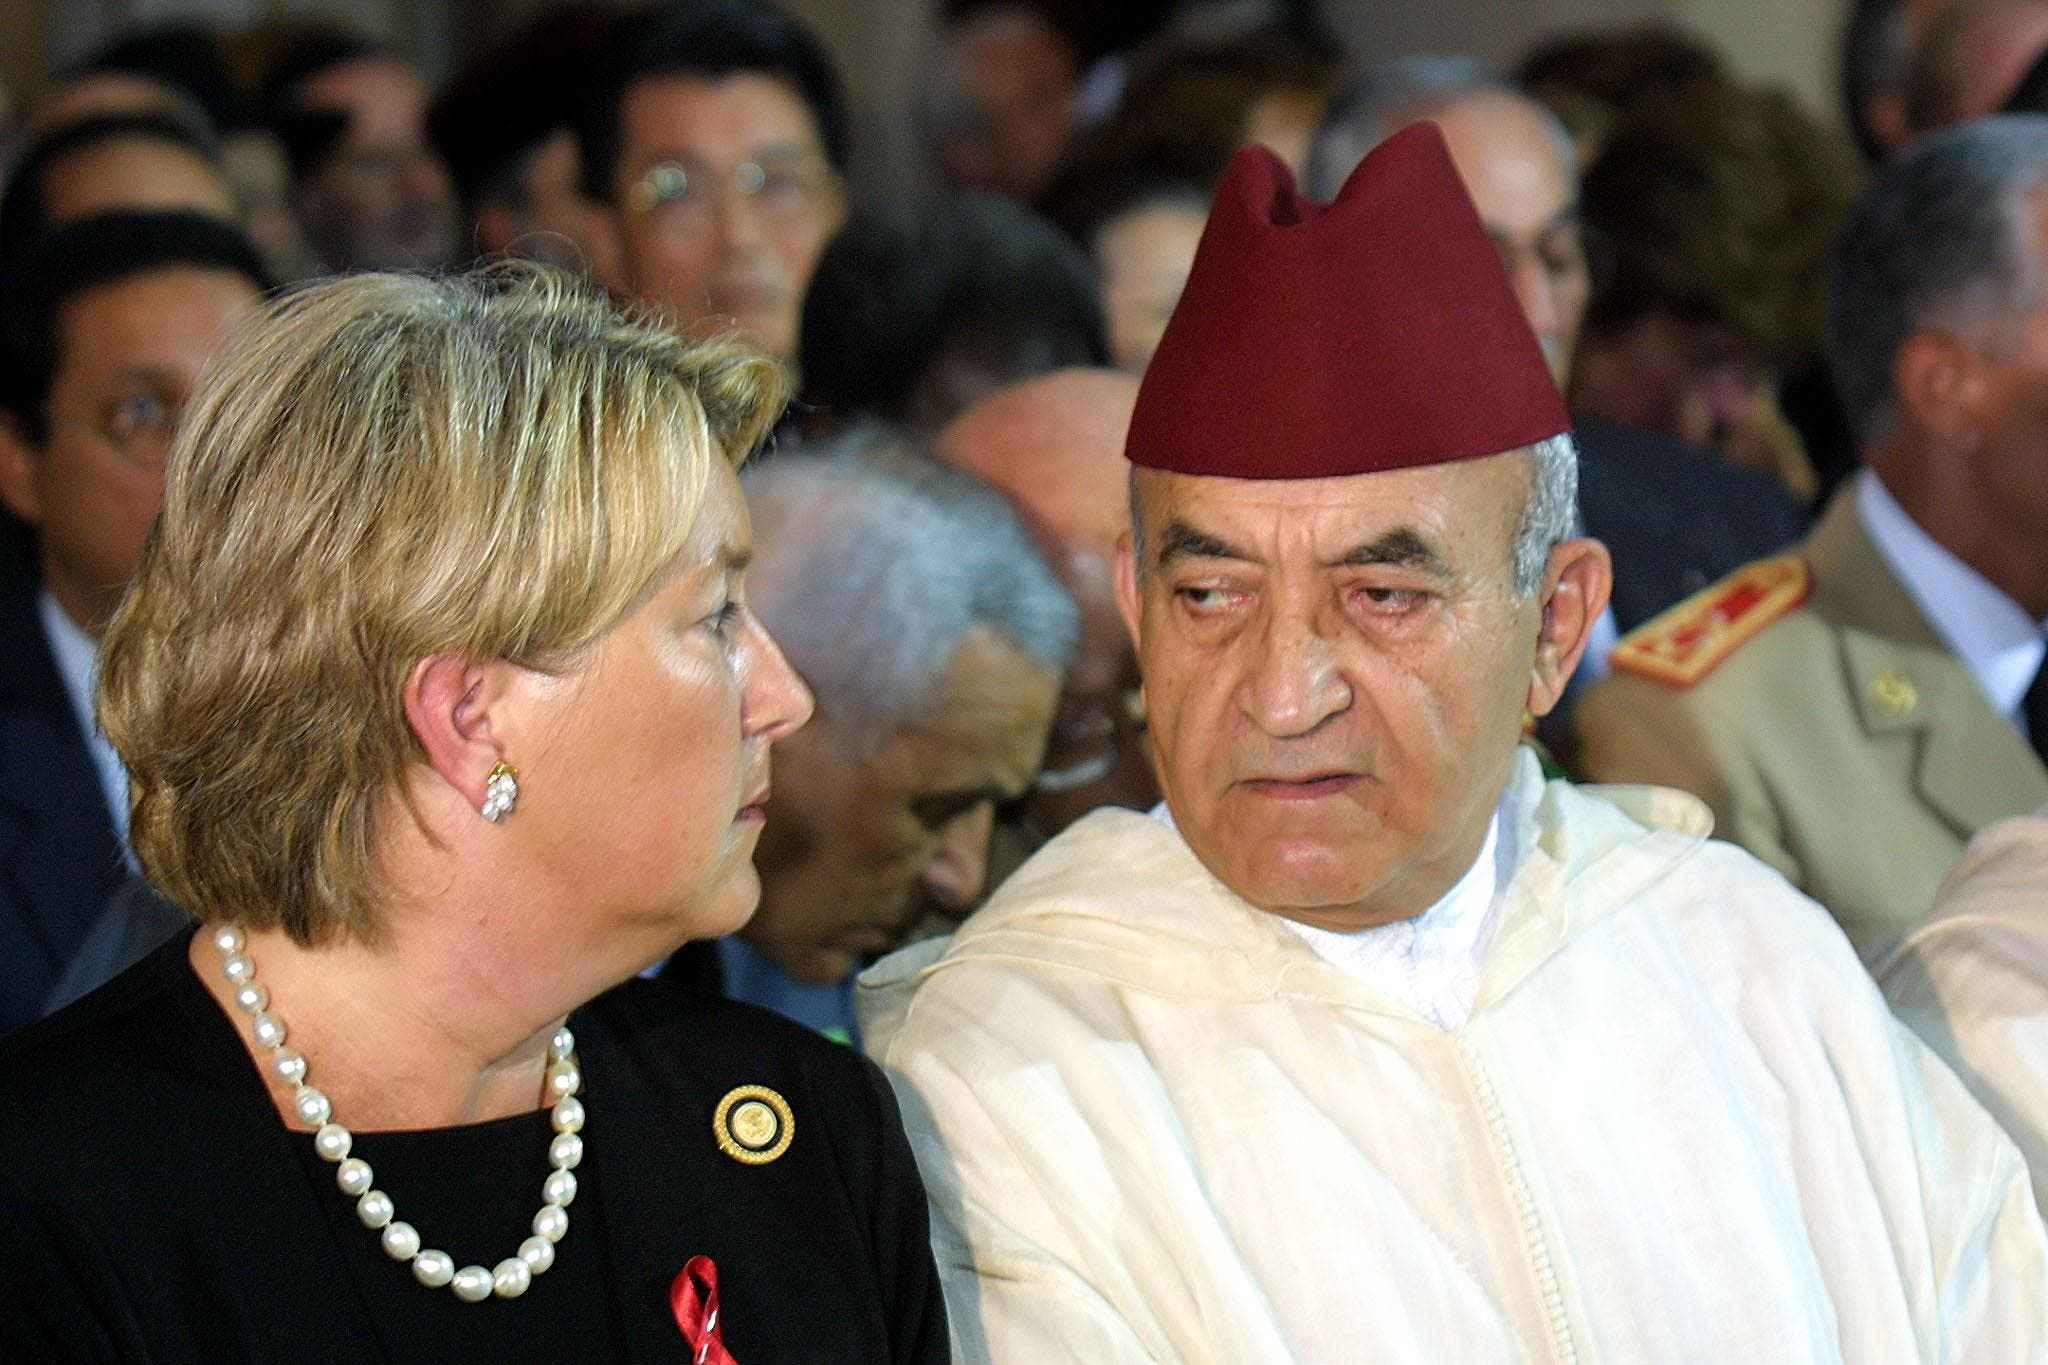 Moroccan Prime Minister Abderrahmane Youssoufi and US ambassador to Morocco Margaret Tutwiler attend an ecumenical service bringing together Morocco's Muslims, Jews and Christians 16 September 2001 at the cathedral of Rabat in memory of the victims of the 11 September attack in US. (AFP)